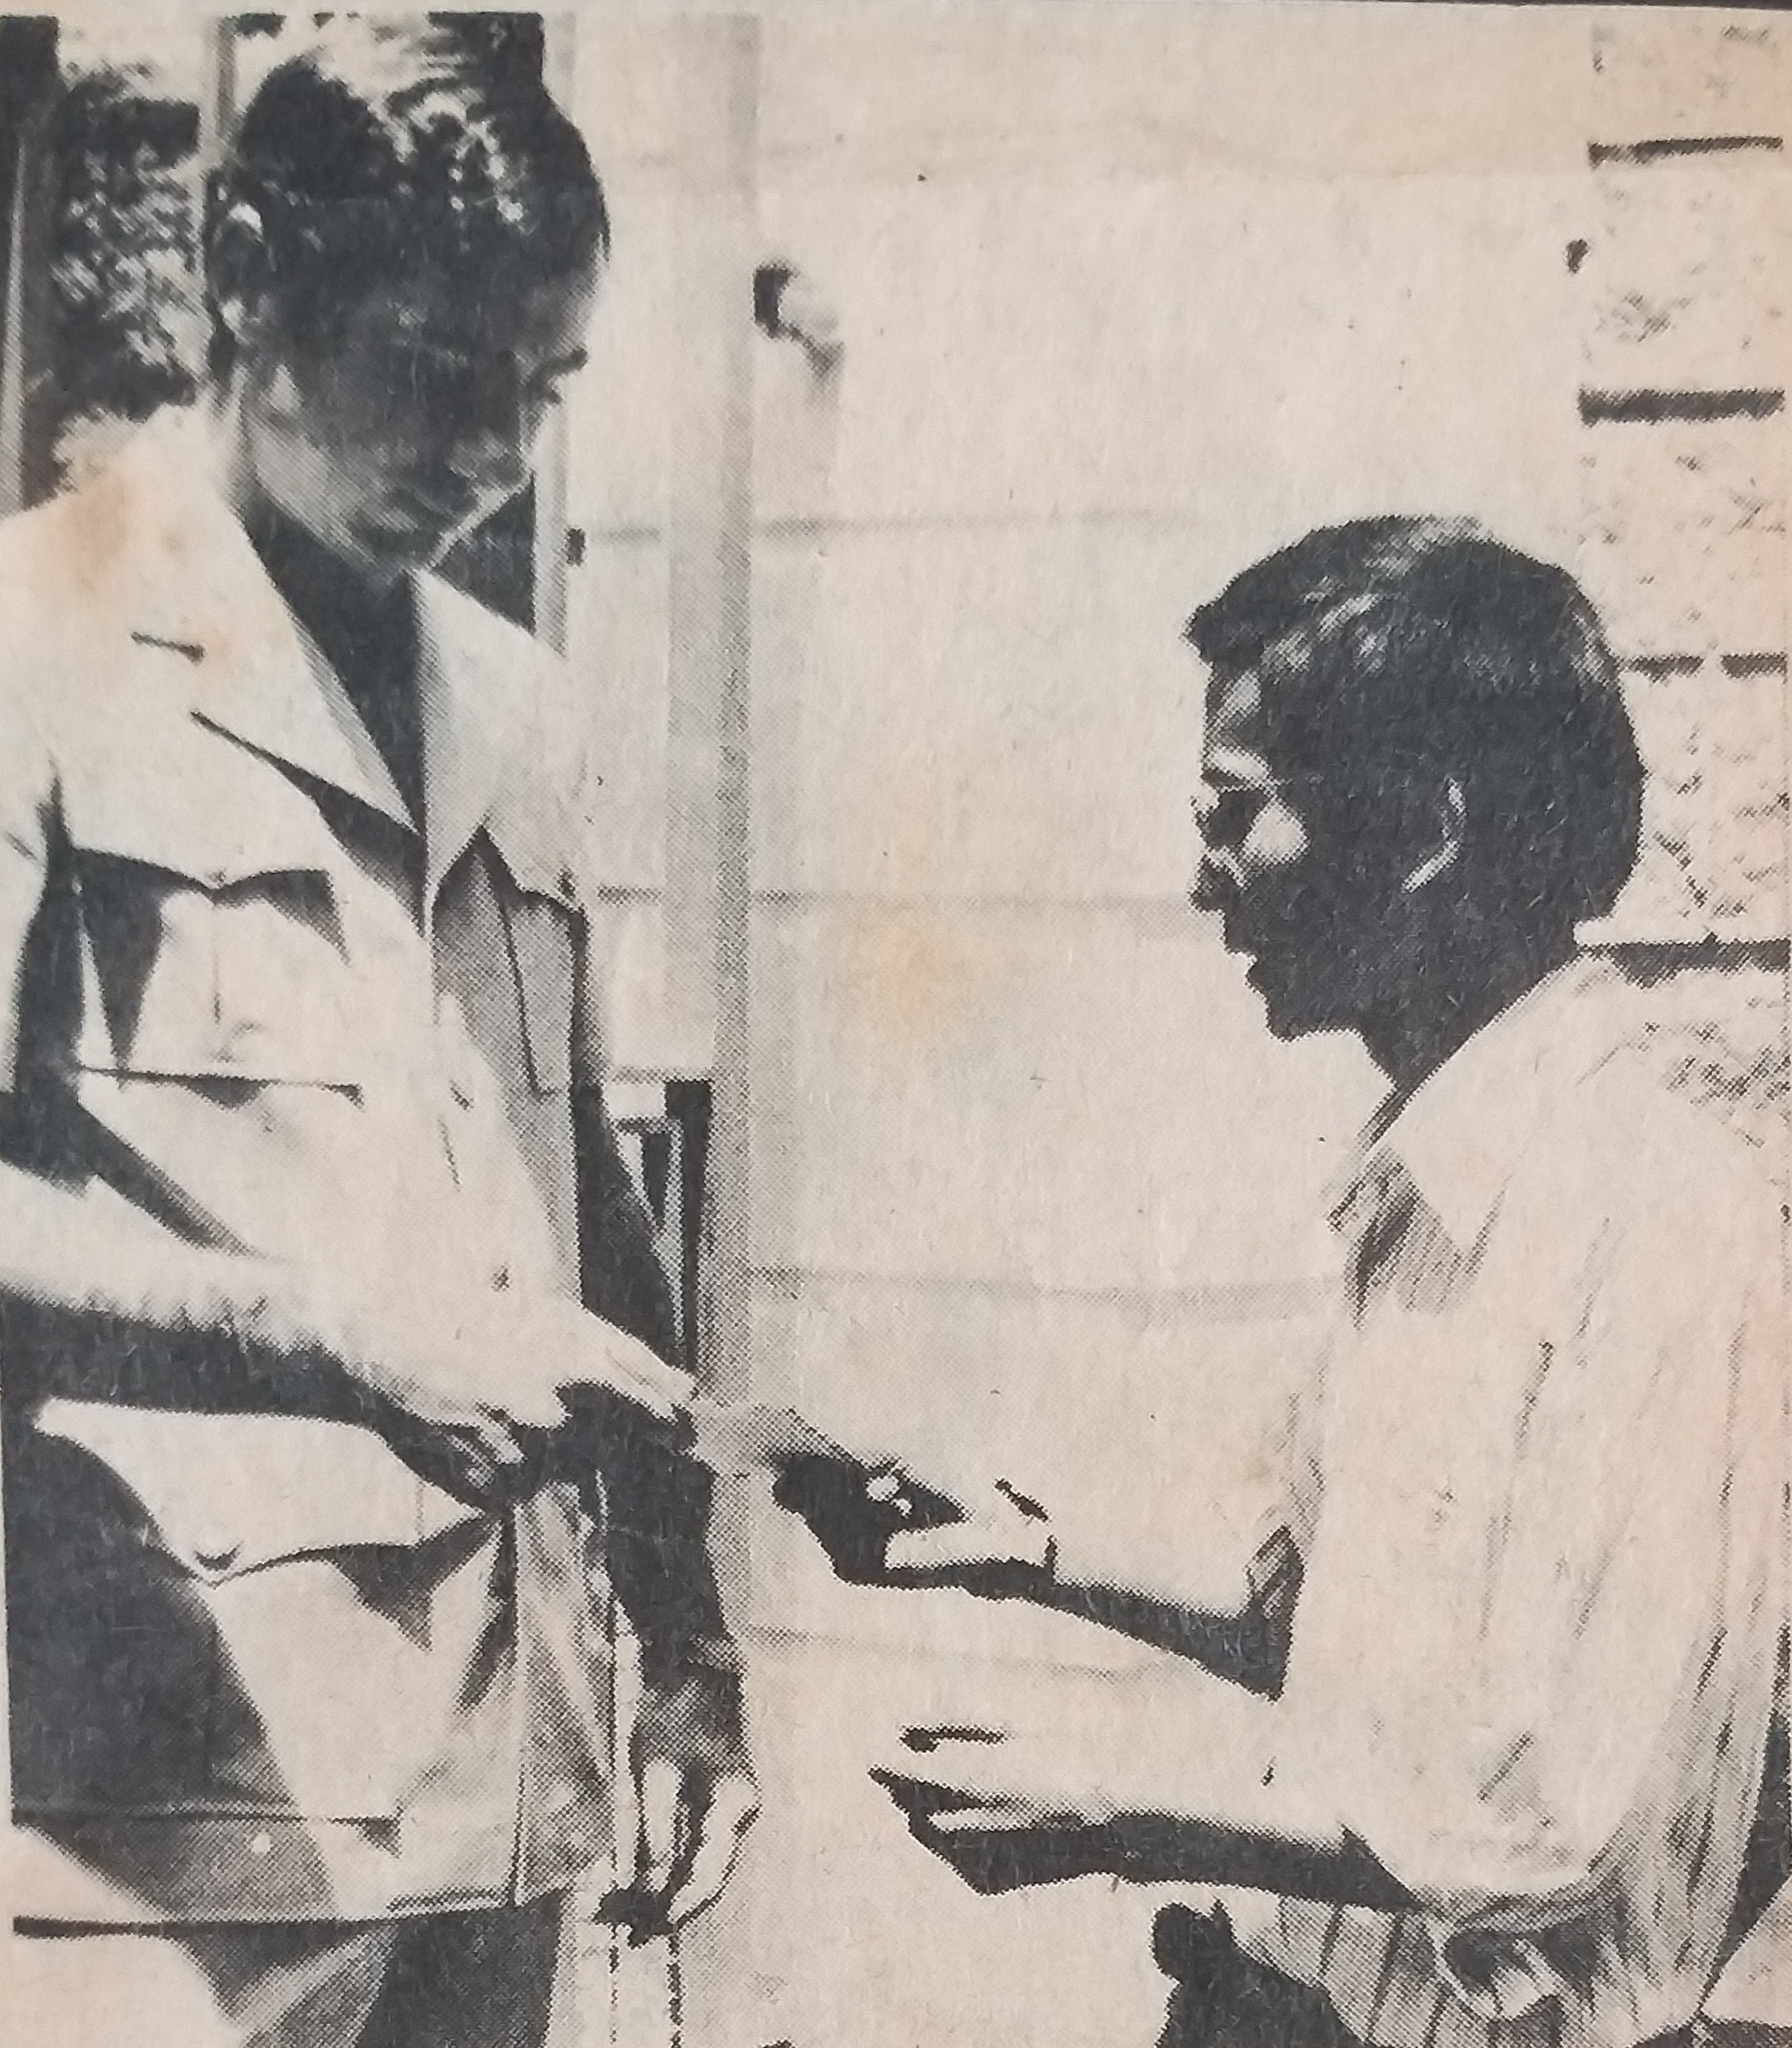 Newspaper clipping showing Au Loong Yu in 1977